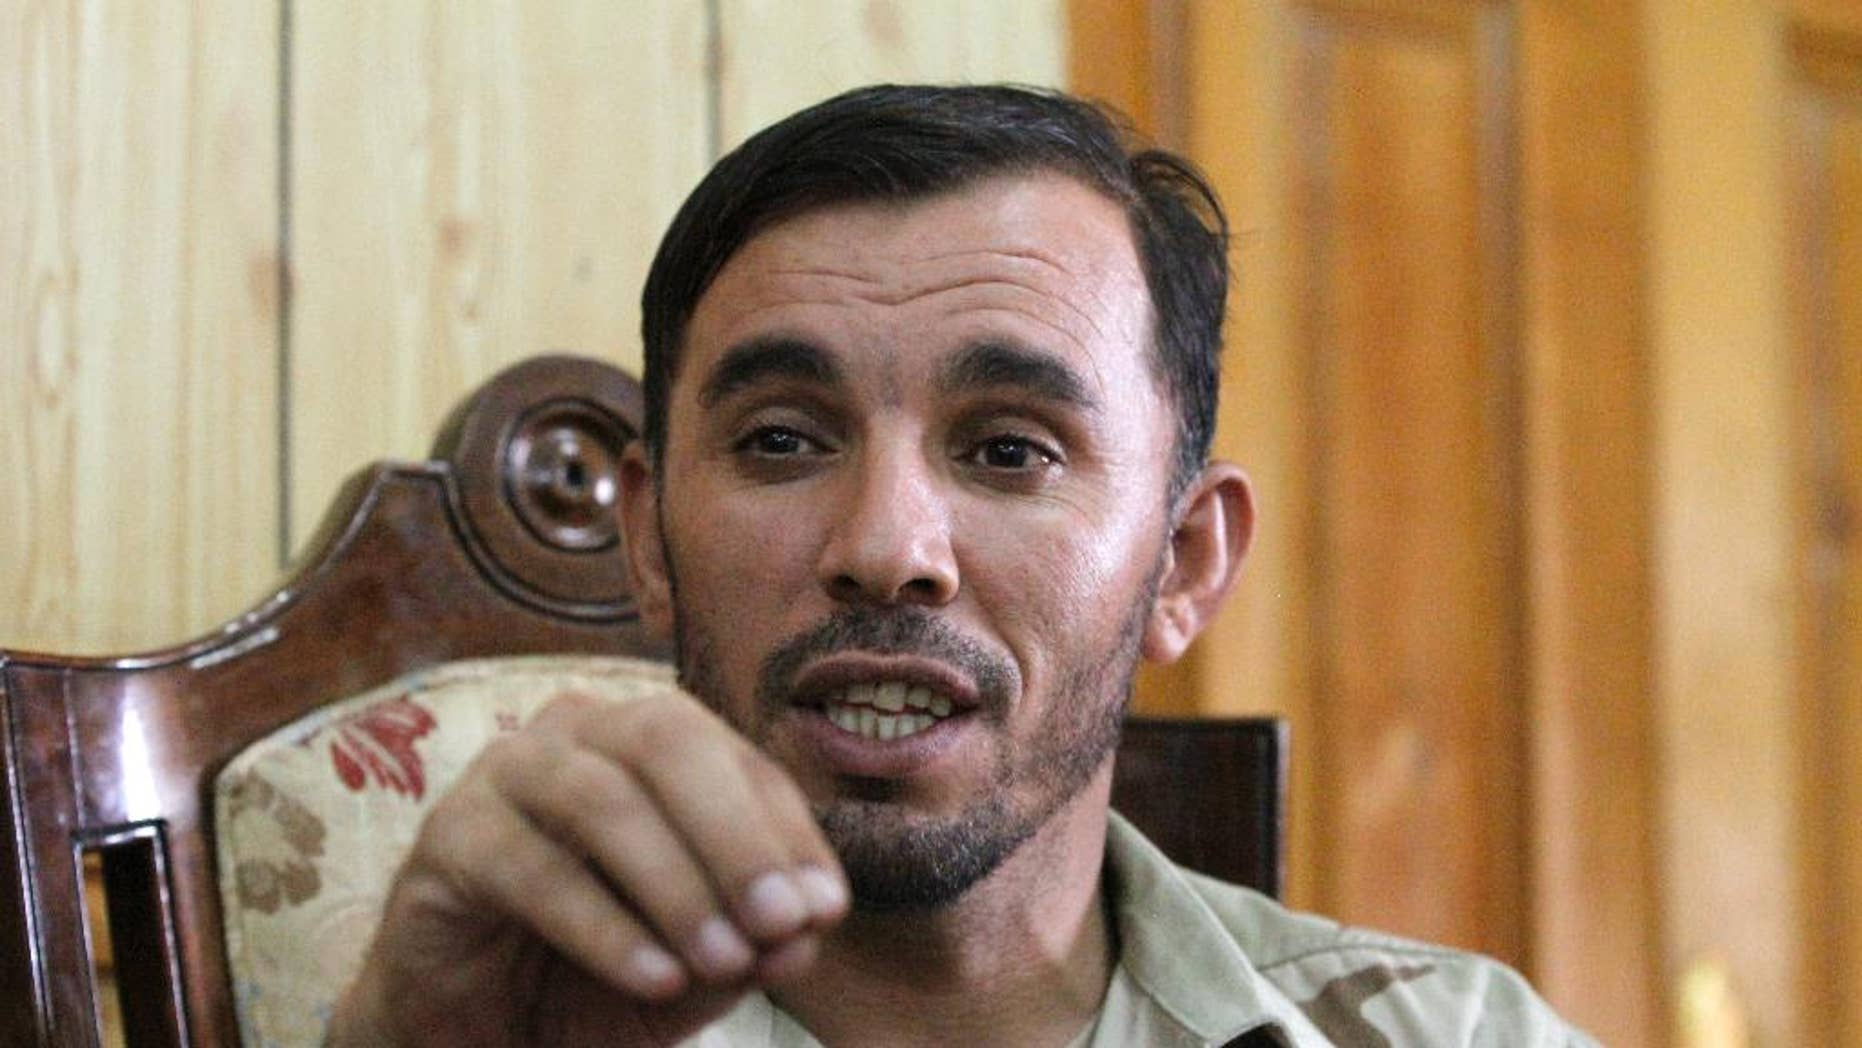 In this Thursday, Aug. 4, 2016 photo, Gen. Abdul Raziq, Kandahar police chief, speaks during an interview with The Associated Press in Kandahar, Afghanistan. Raziq, regarded as one of the country's most powerful men has banned the use of the Pakistani currency in the key southern province of Kandahar. Raziq's ban came into effect last week. Traders said it had an immediate effect, with the afghani strengthening in recent days. (AP Photos/Allauddin Khan)